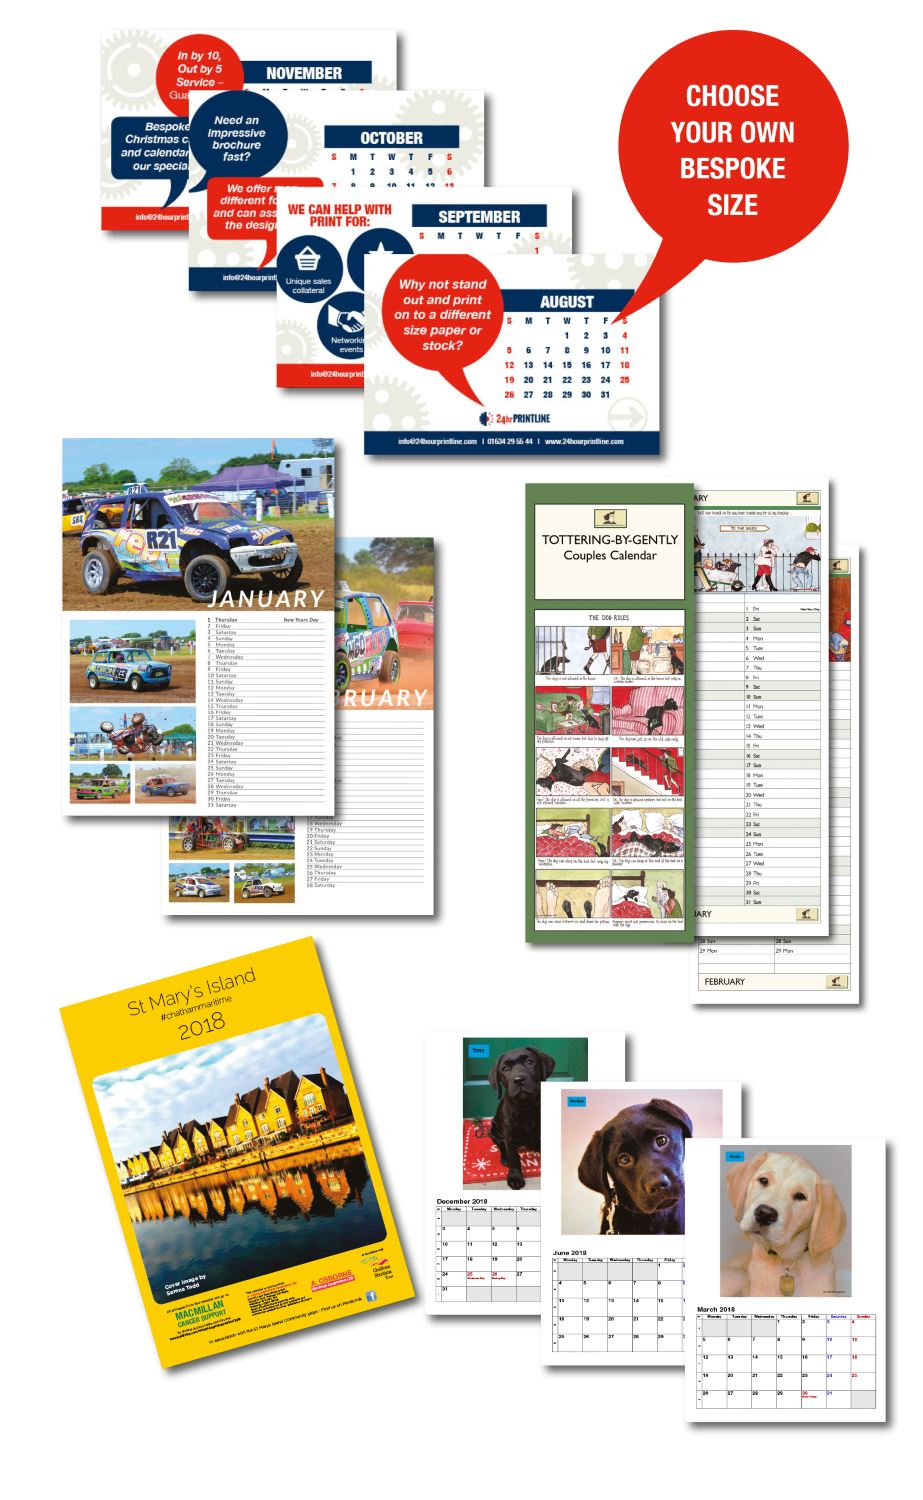 Options for our printed calendars